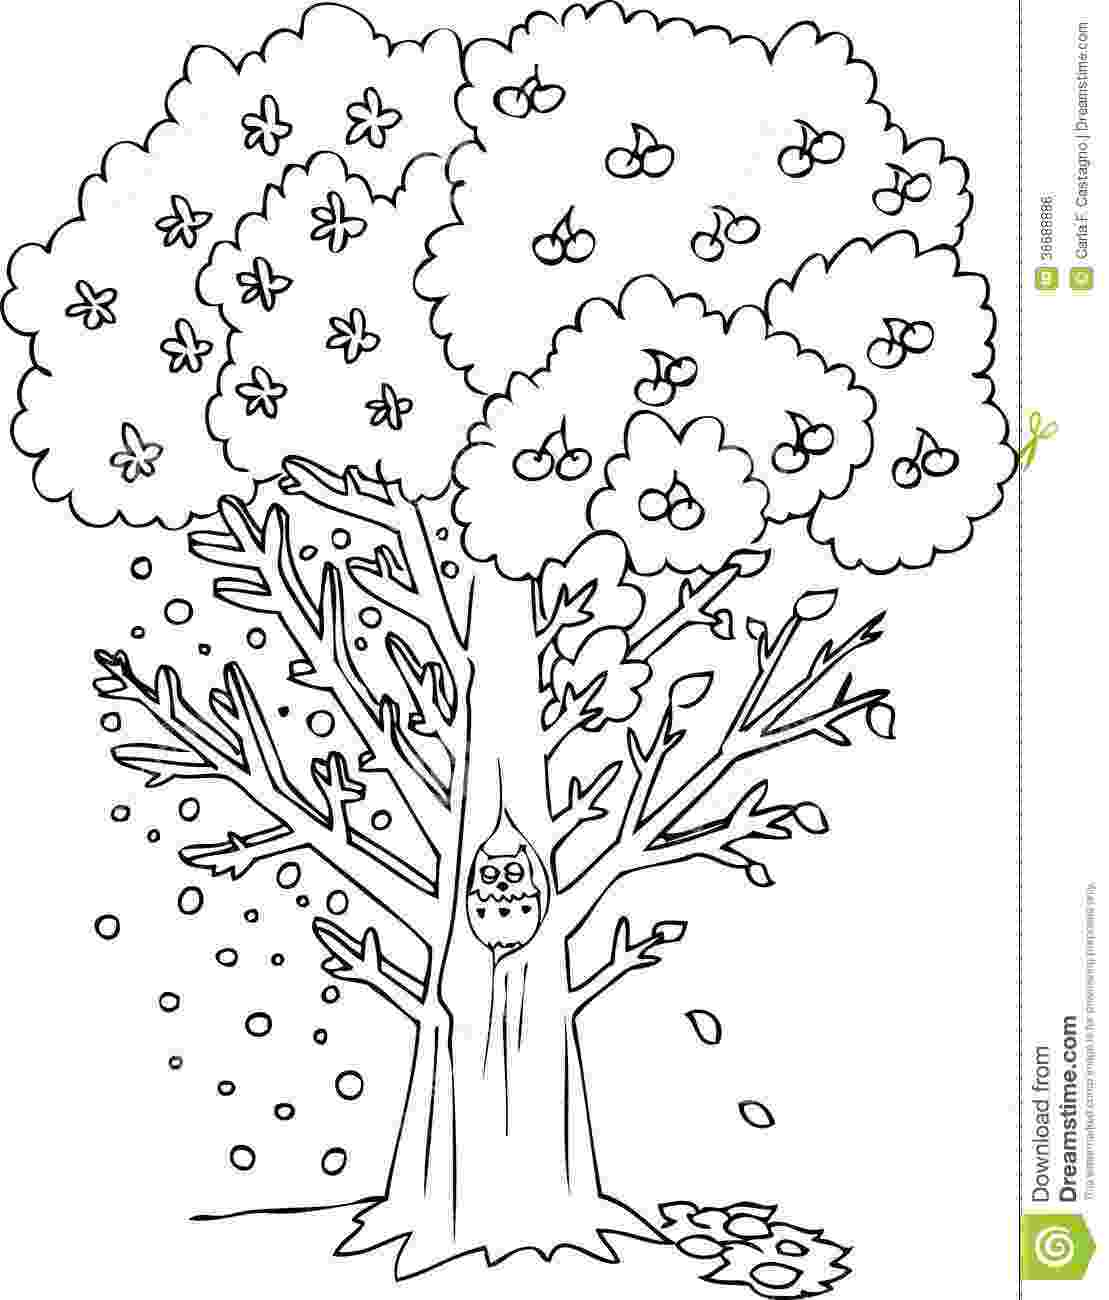 seasons coloring pages materials support ms dania naseem 2a coloring seasons pages